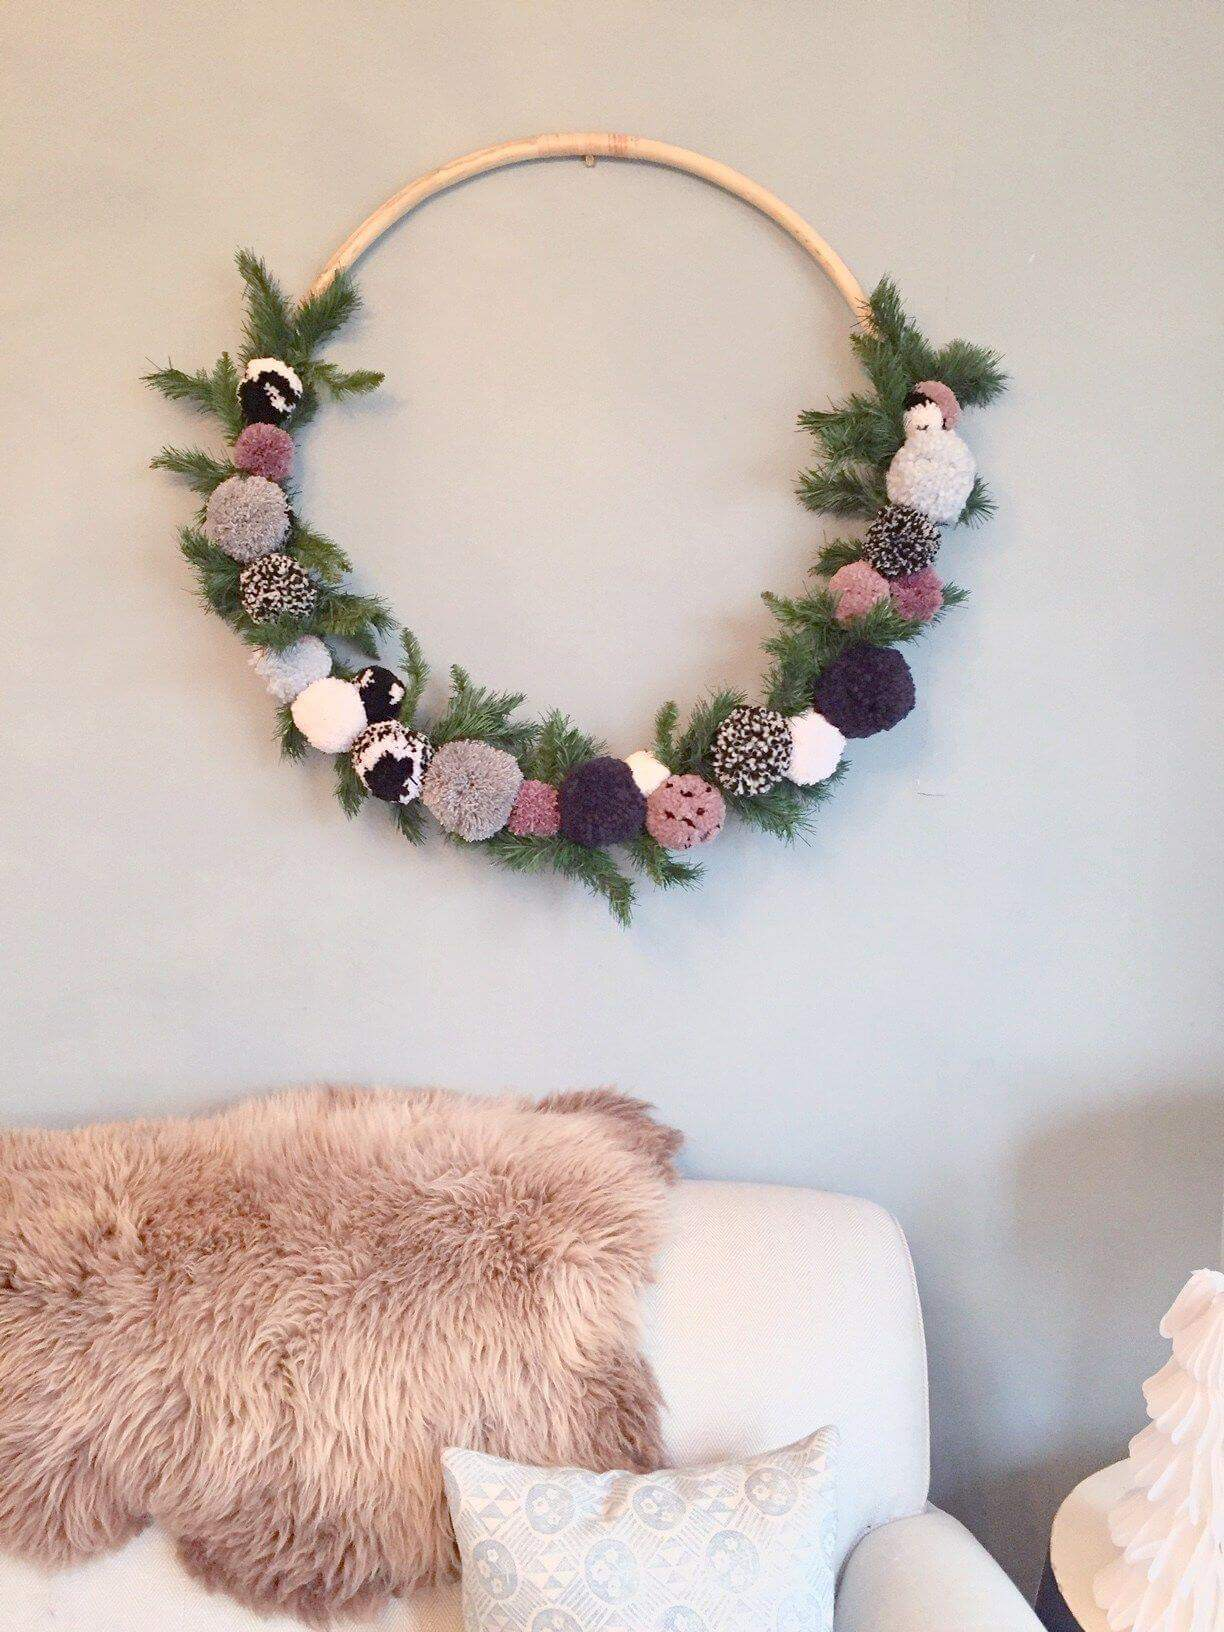 Diy round floral wall hanging